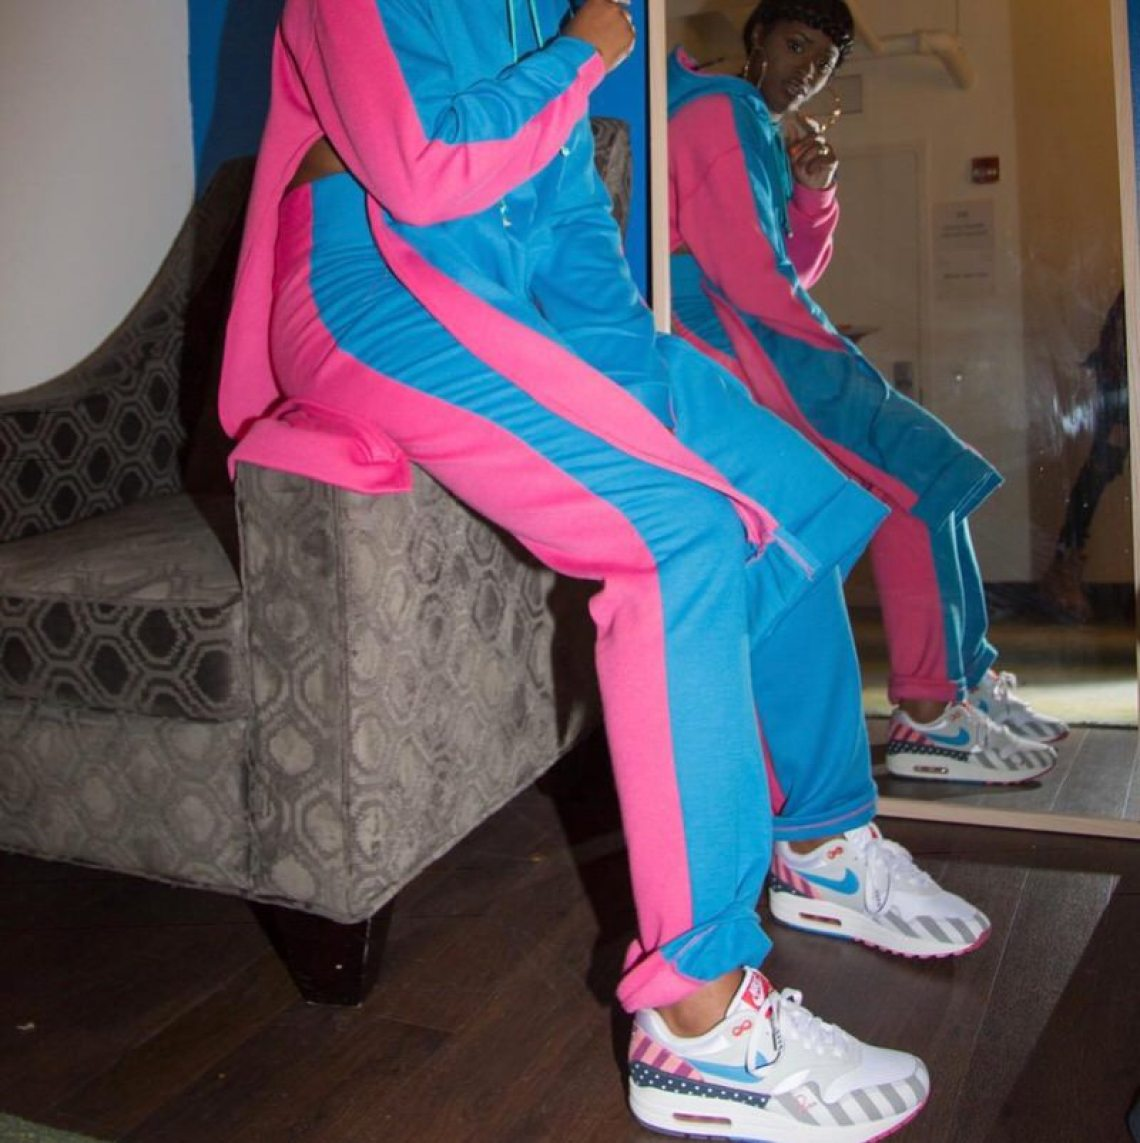 Tierra Whack in the Parra x Nike Air Max 1